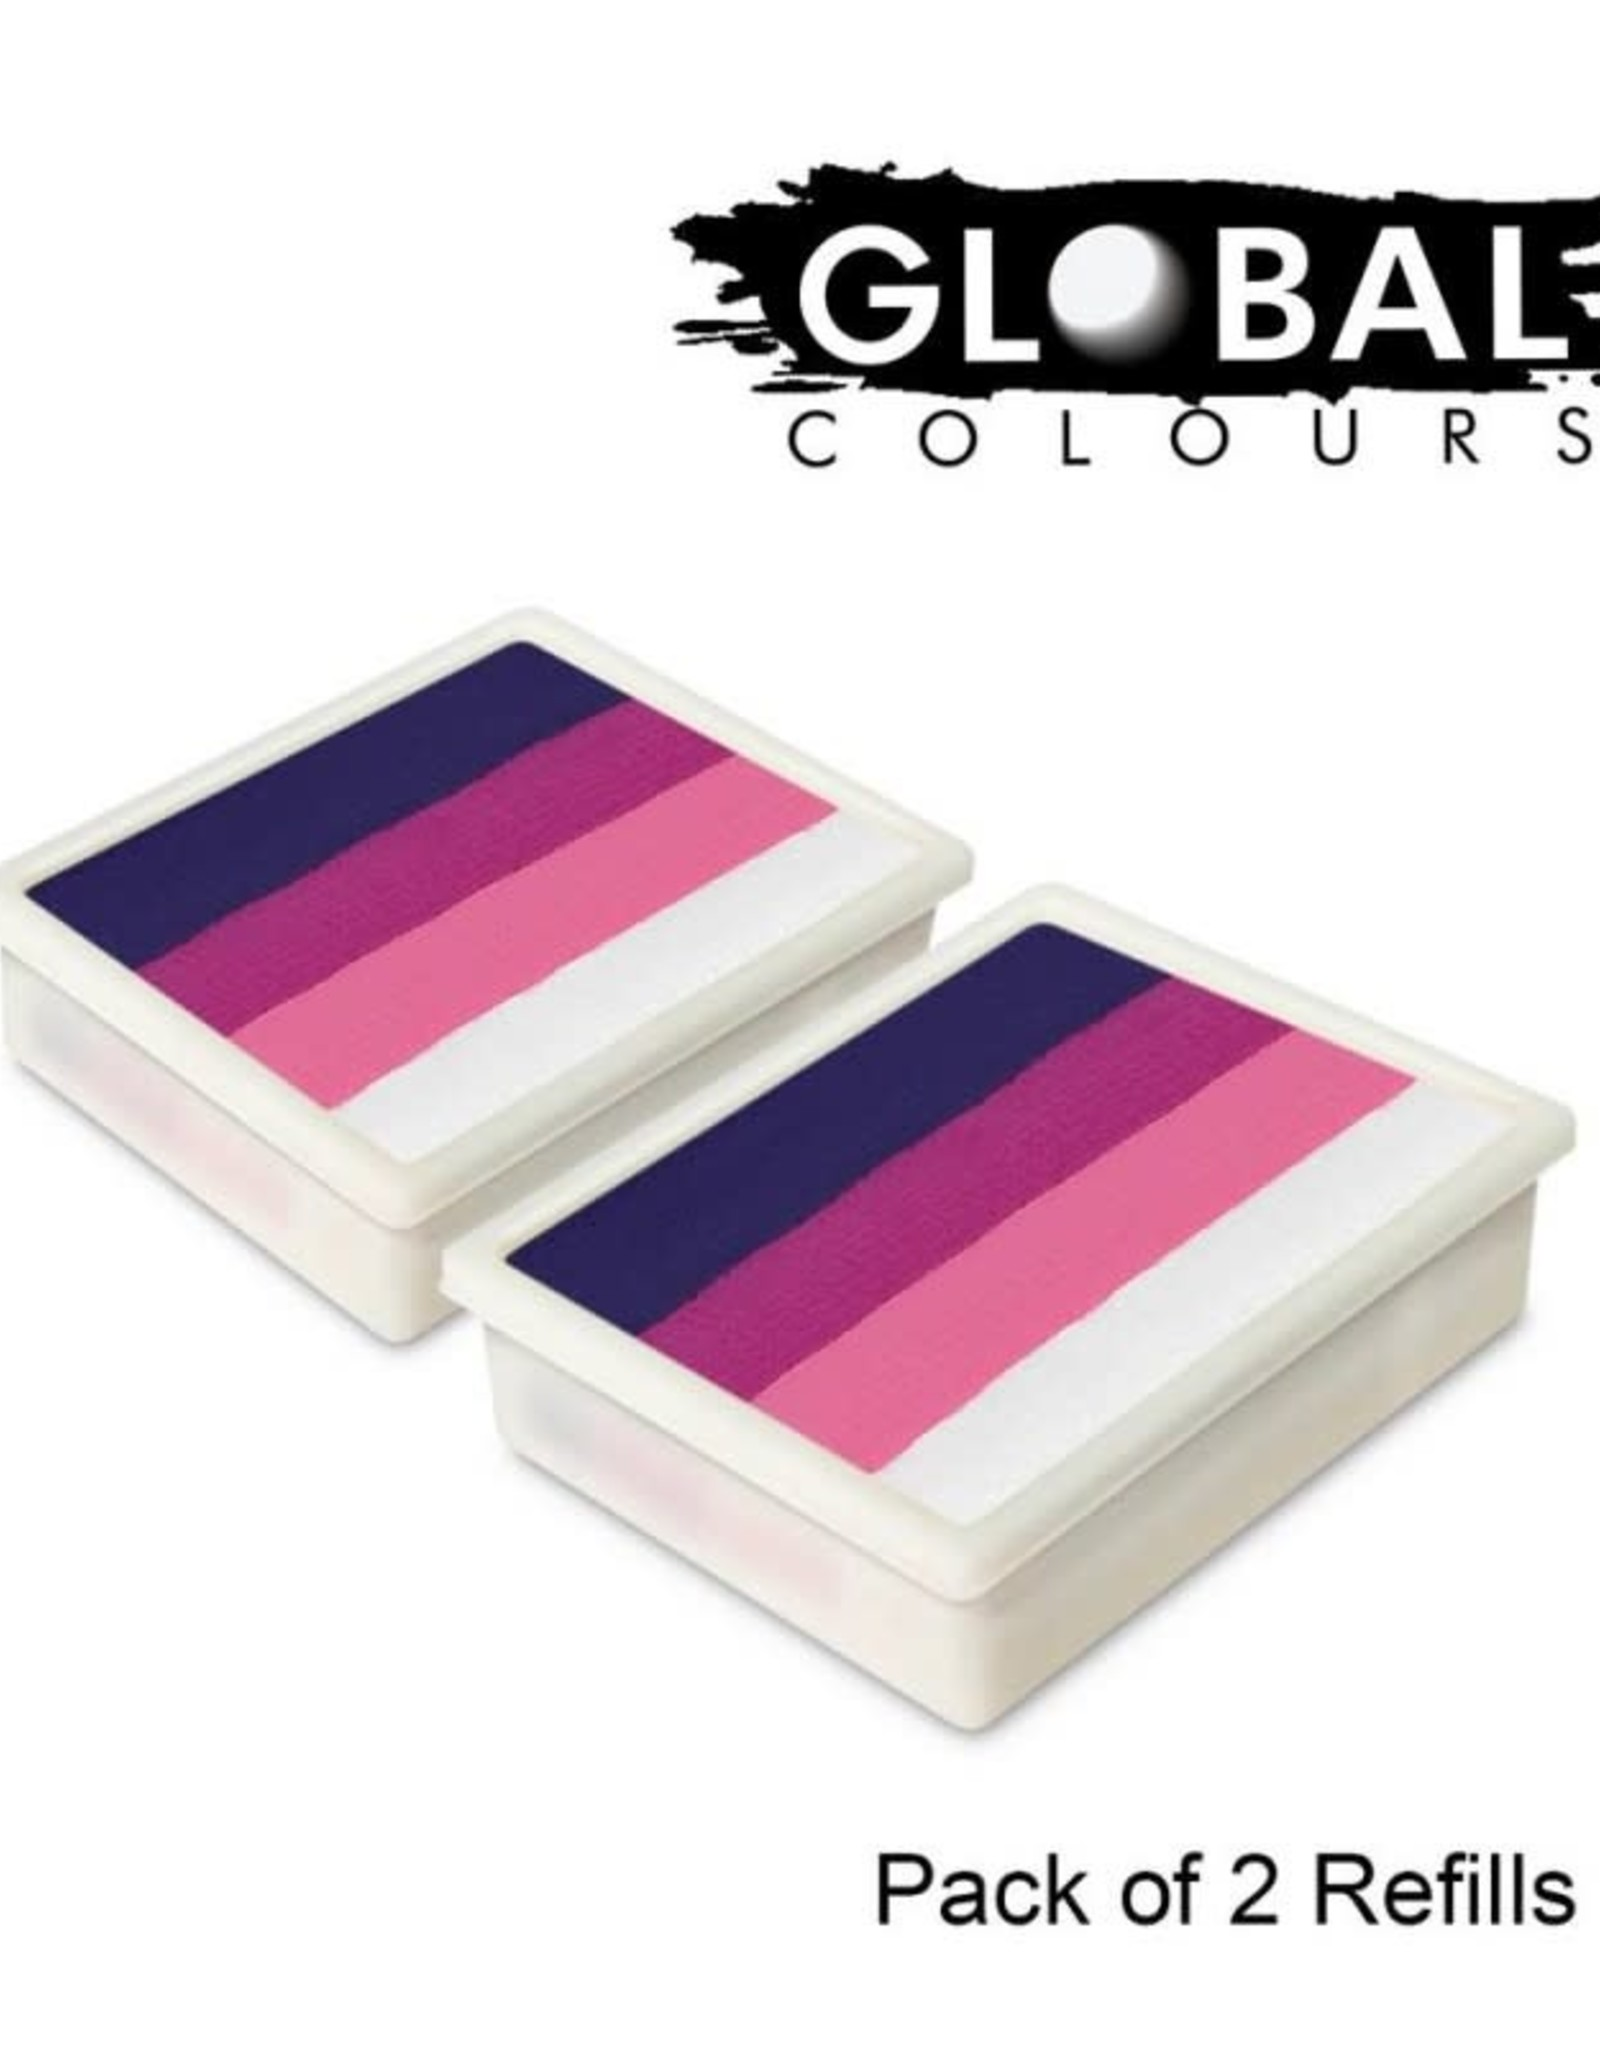 Global Global Colours - 2 PACK Naples 2 x 10g